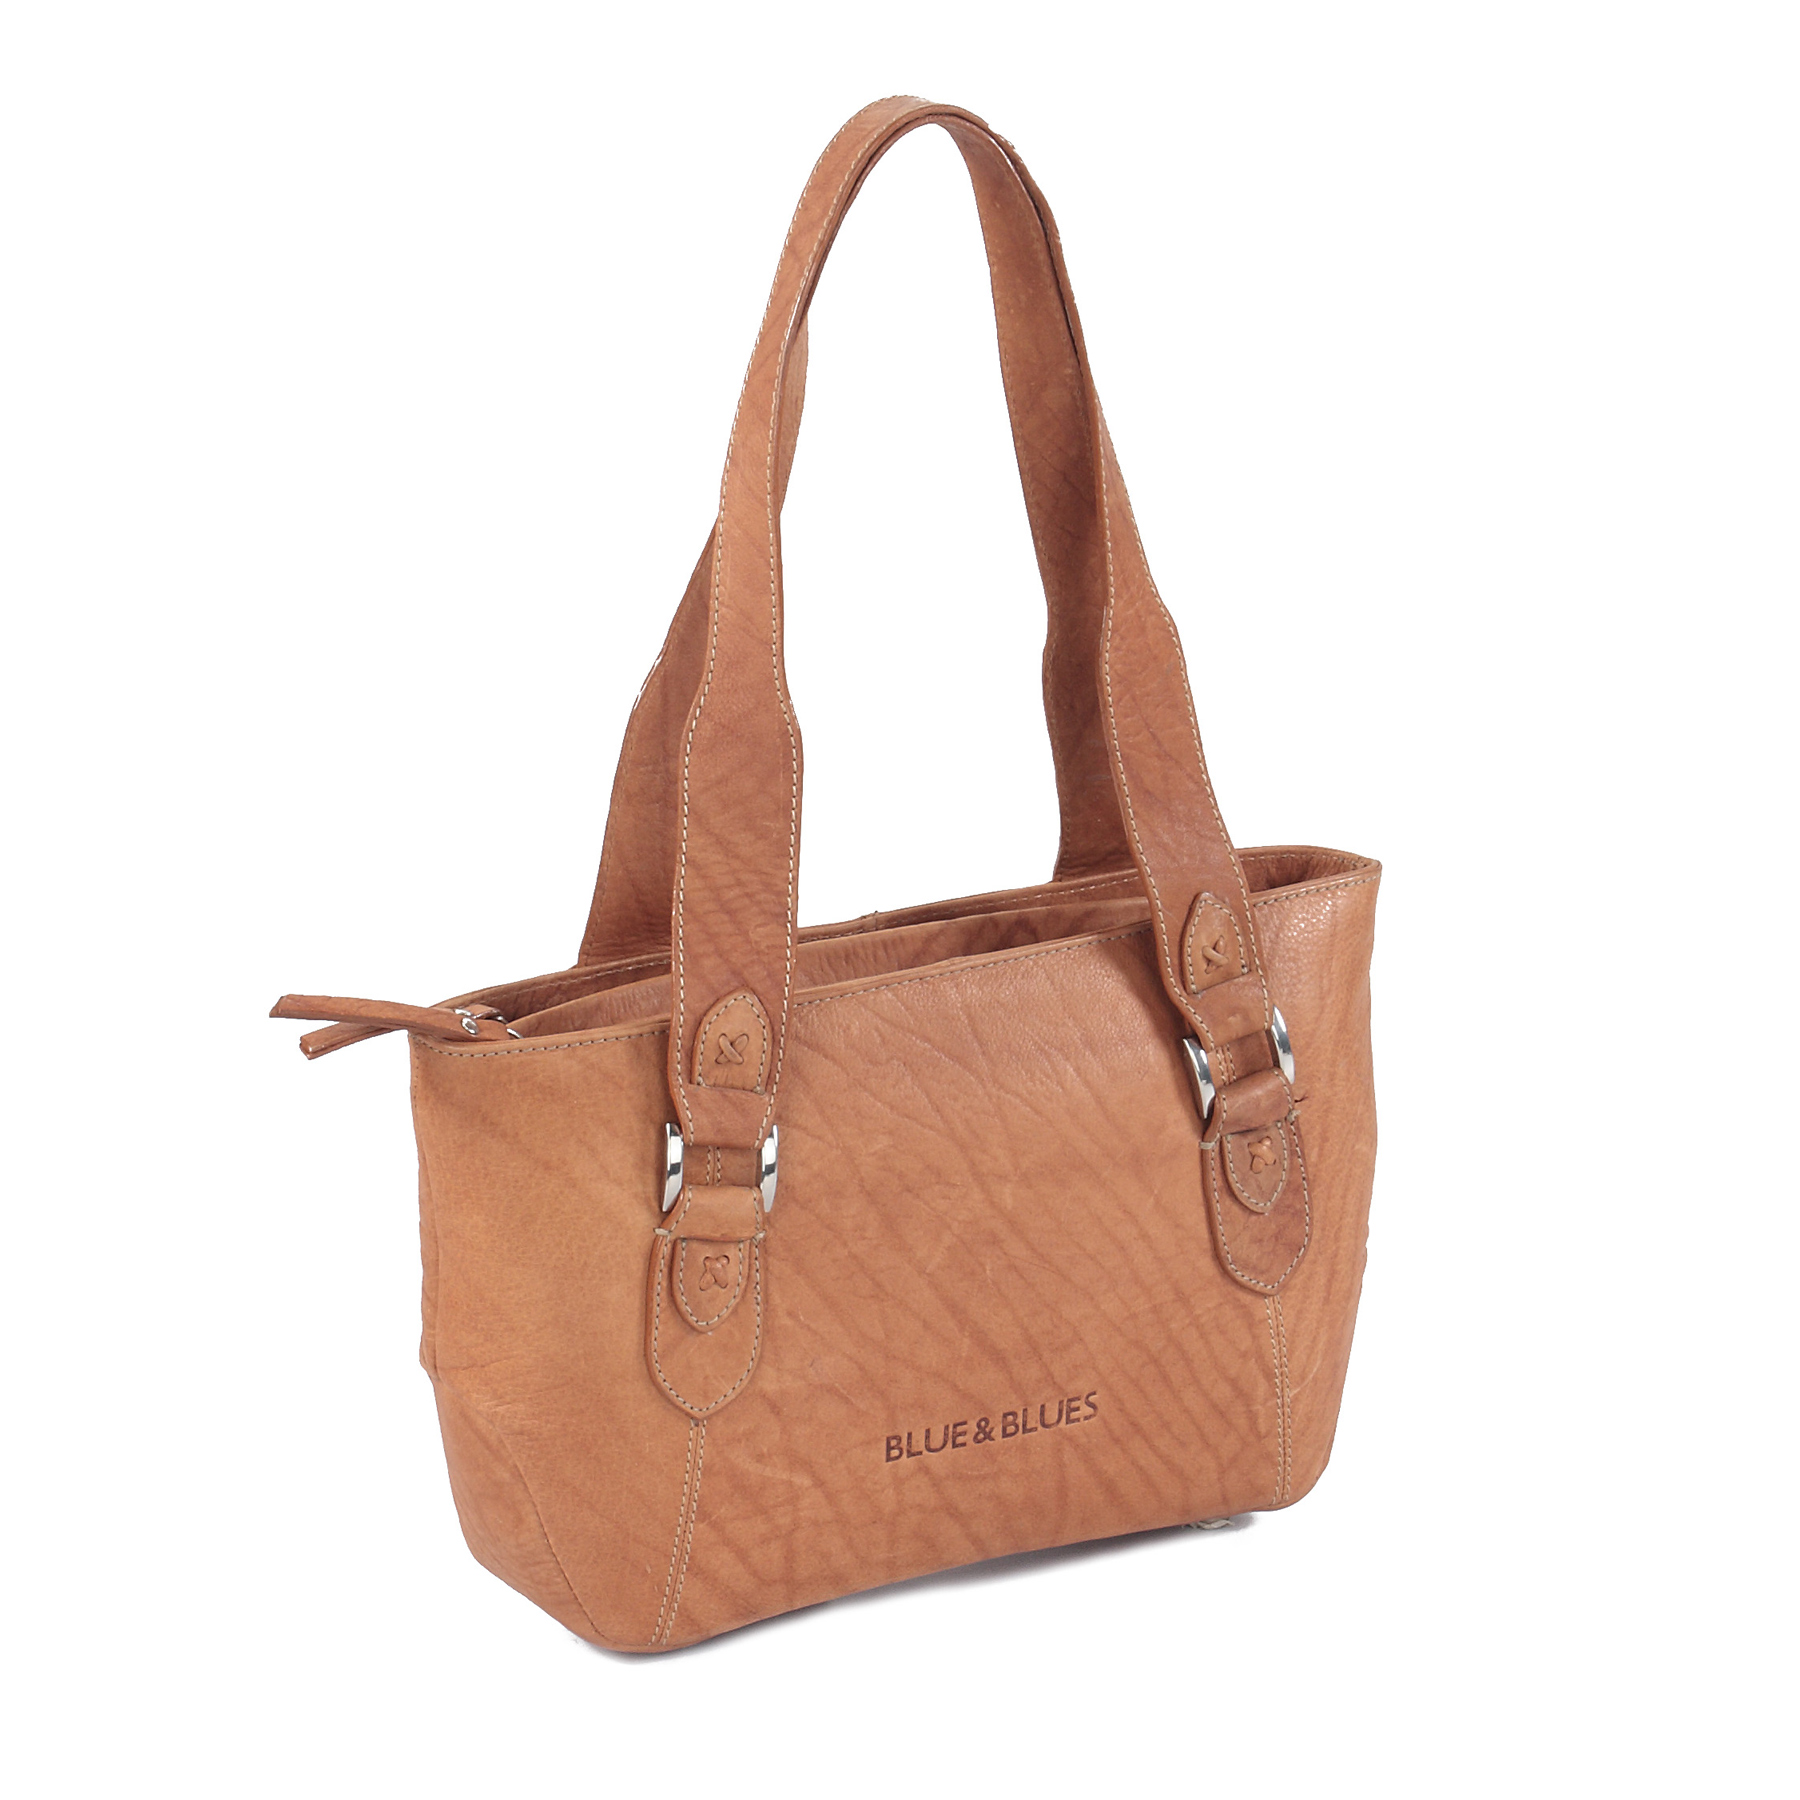 c8bf89793f Purchase Stylish Ladies Leather Bags From Blue   Blues